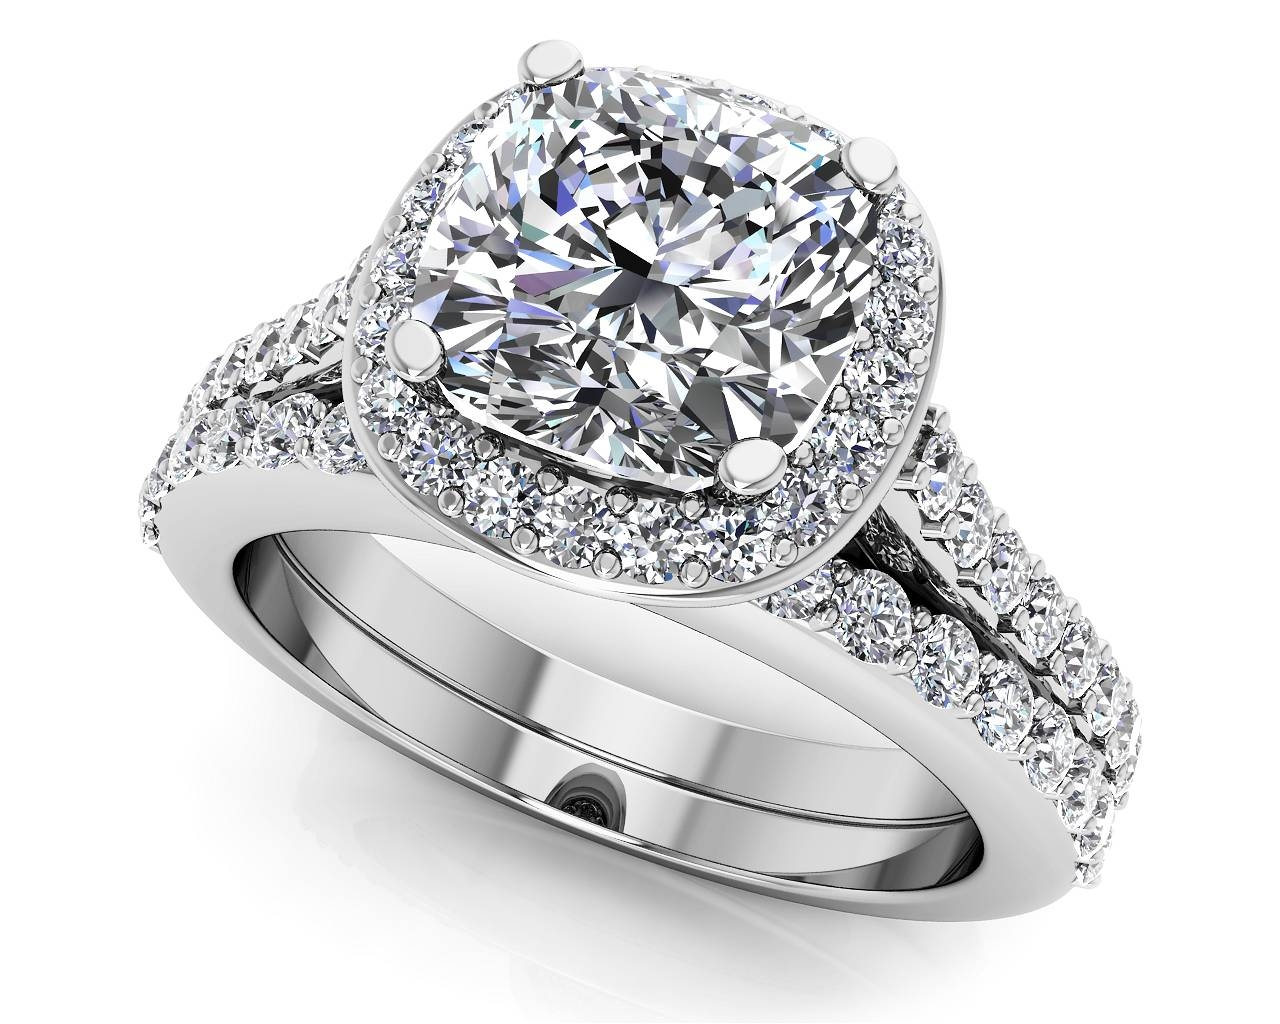 Customize Your Wedding Set & Matching Diamond Bridal Set Pertaining To Halo Diamond Wedding Band Sets (View 7 of 15)